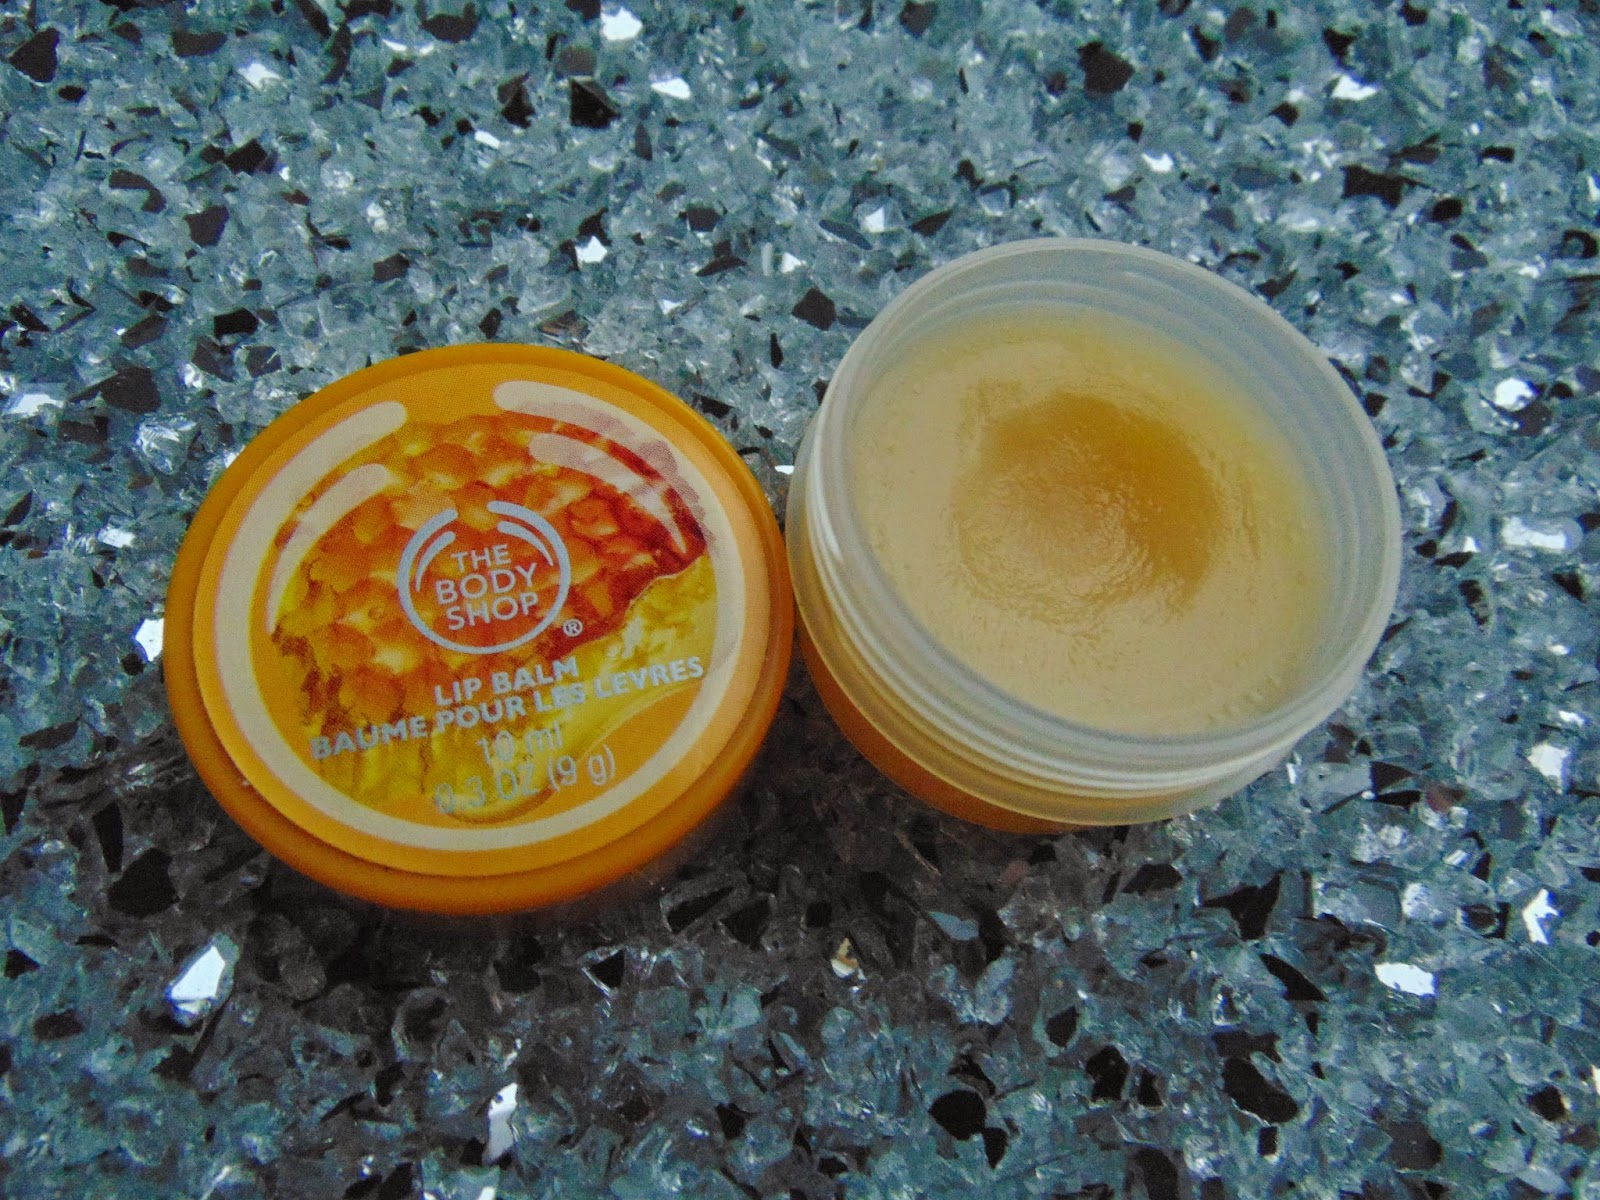 The Body Shop - Lip Balm Honey - www.annitschkasblog.de